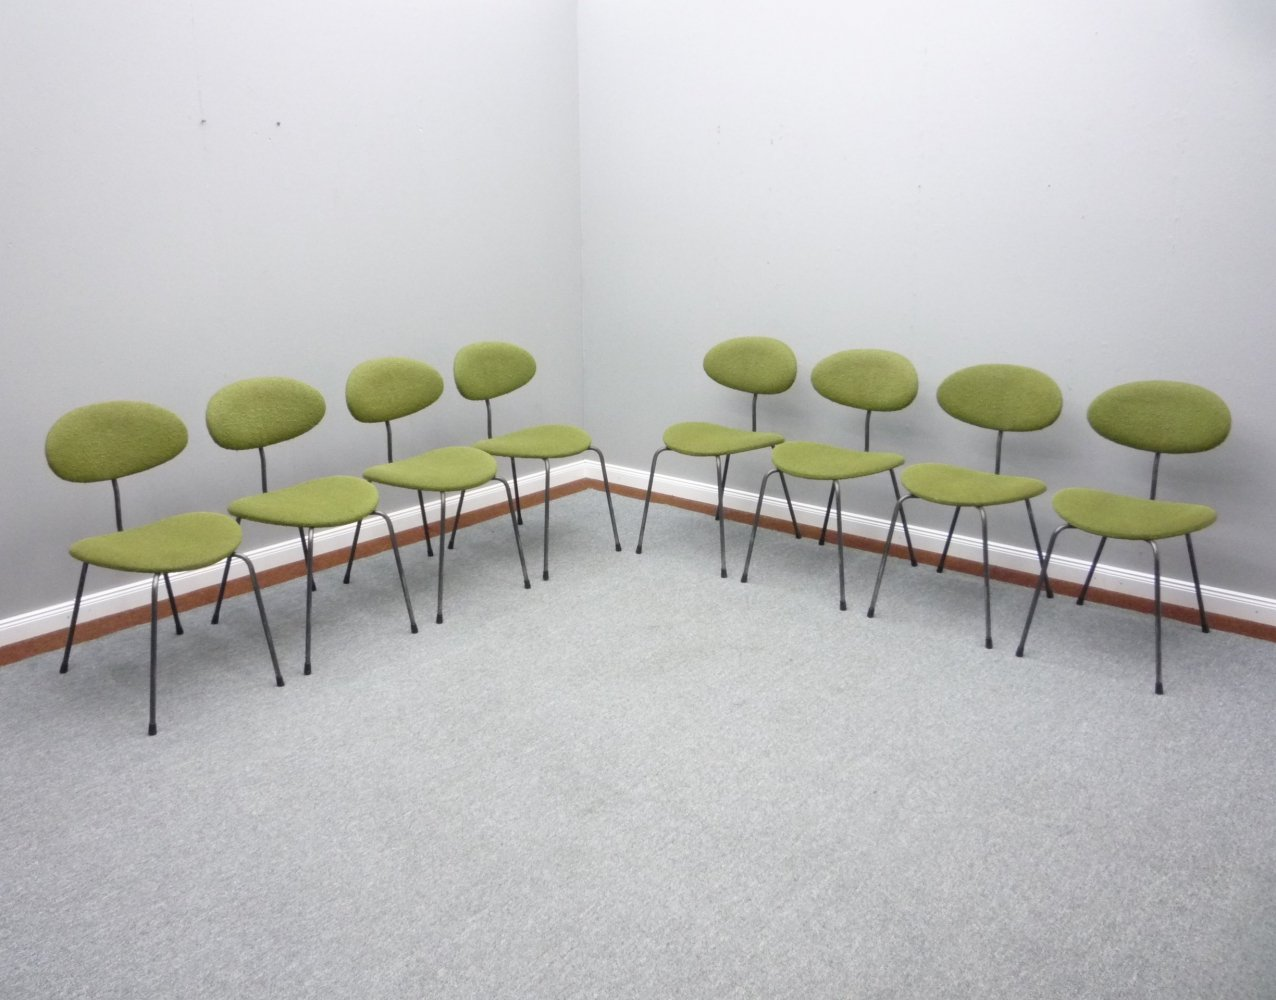 12 x Dining Room Chairs by Hans Bellmann for Domus Germany, 1950s